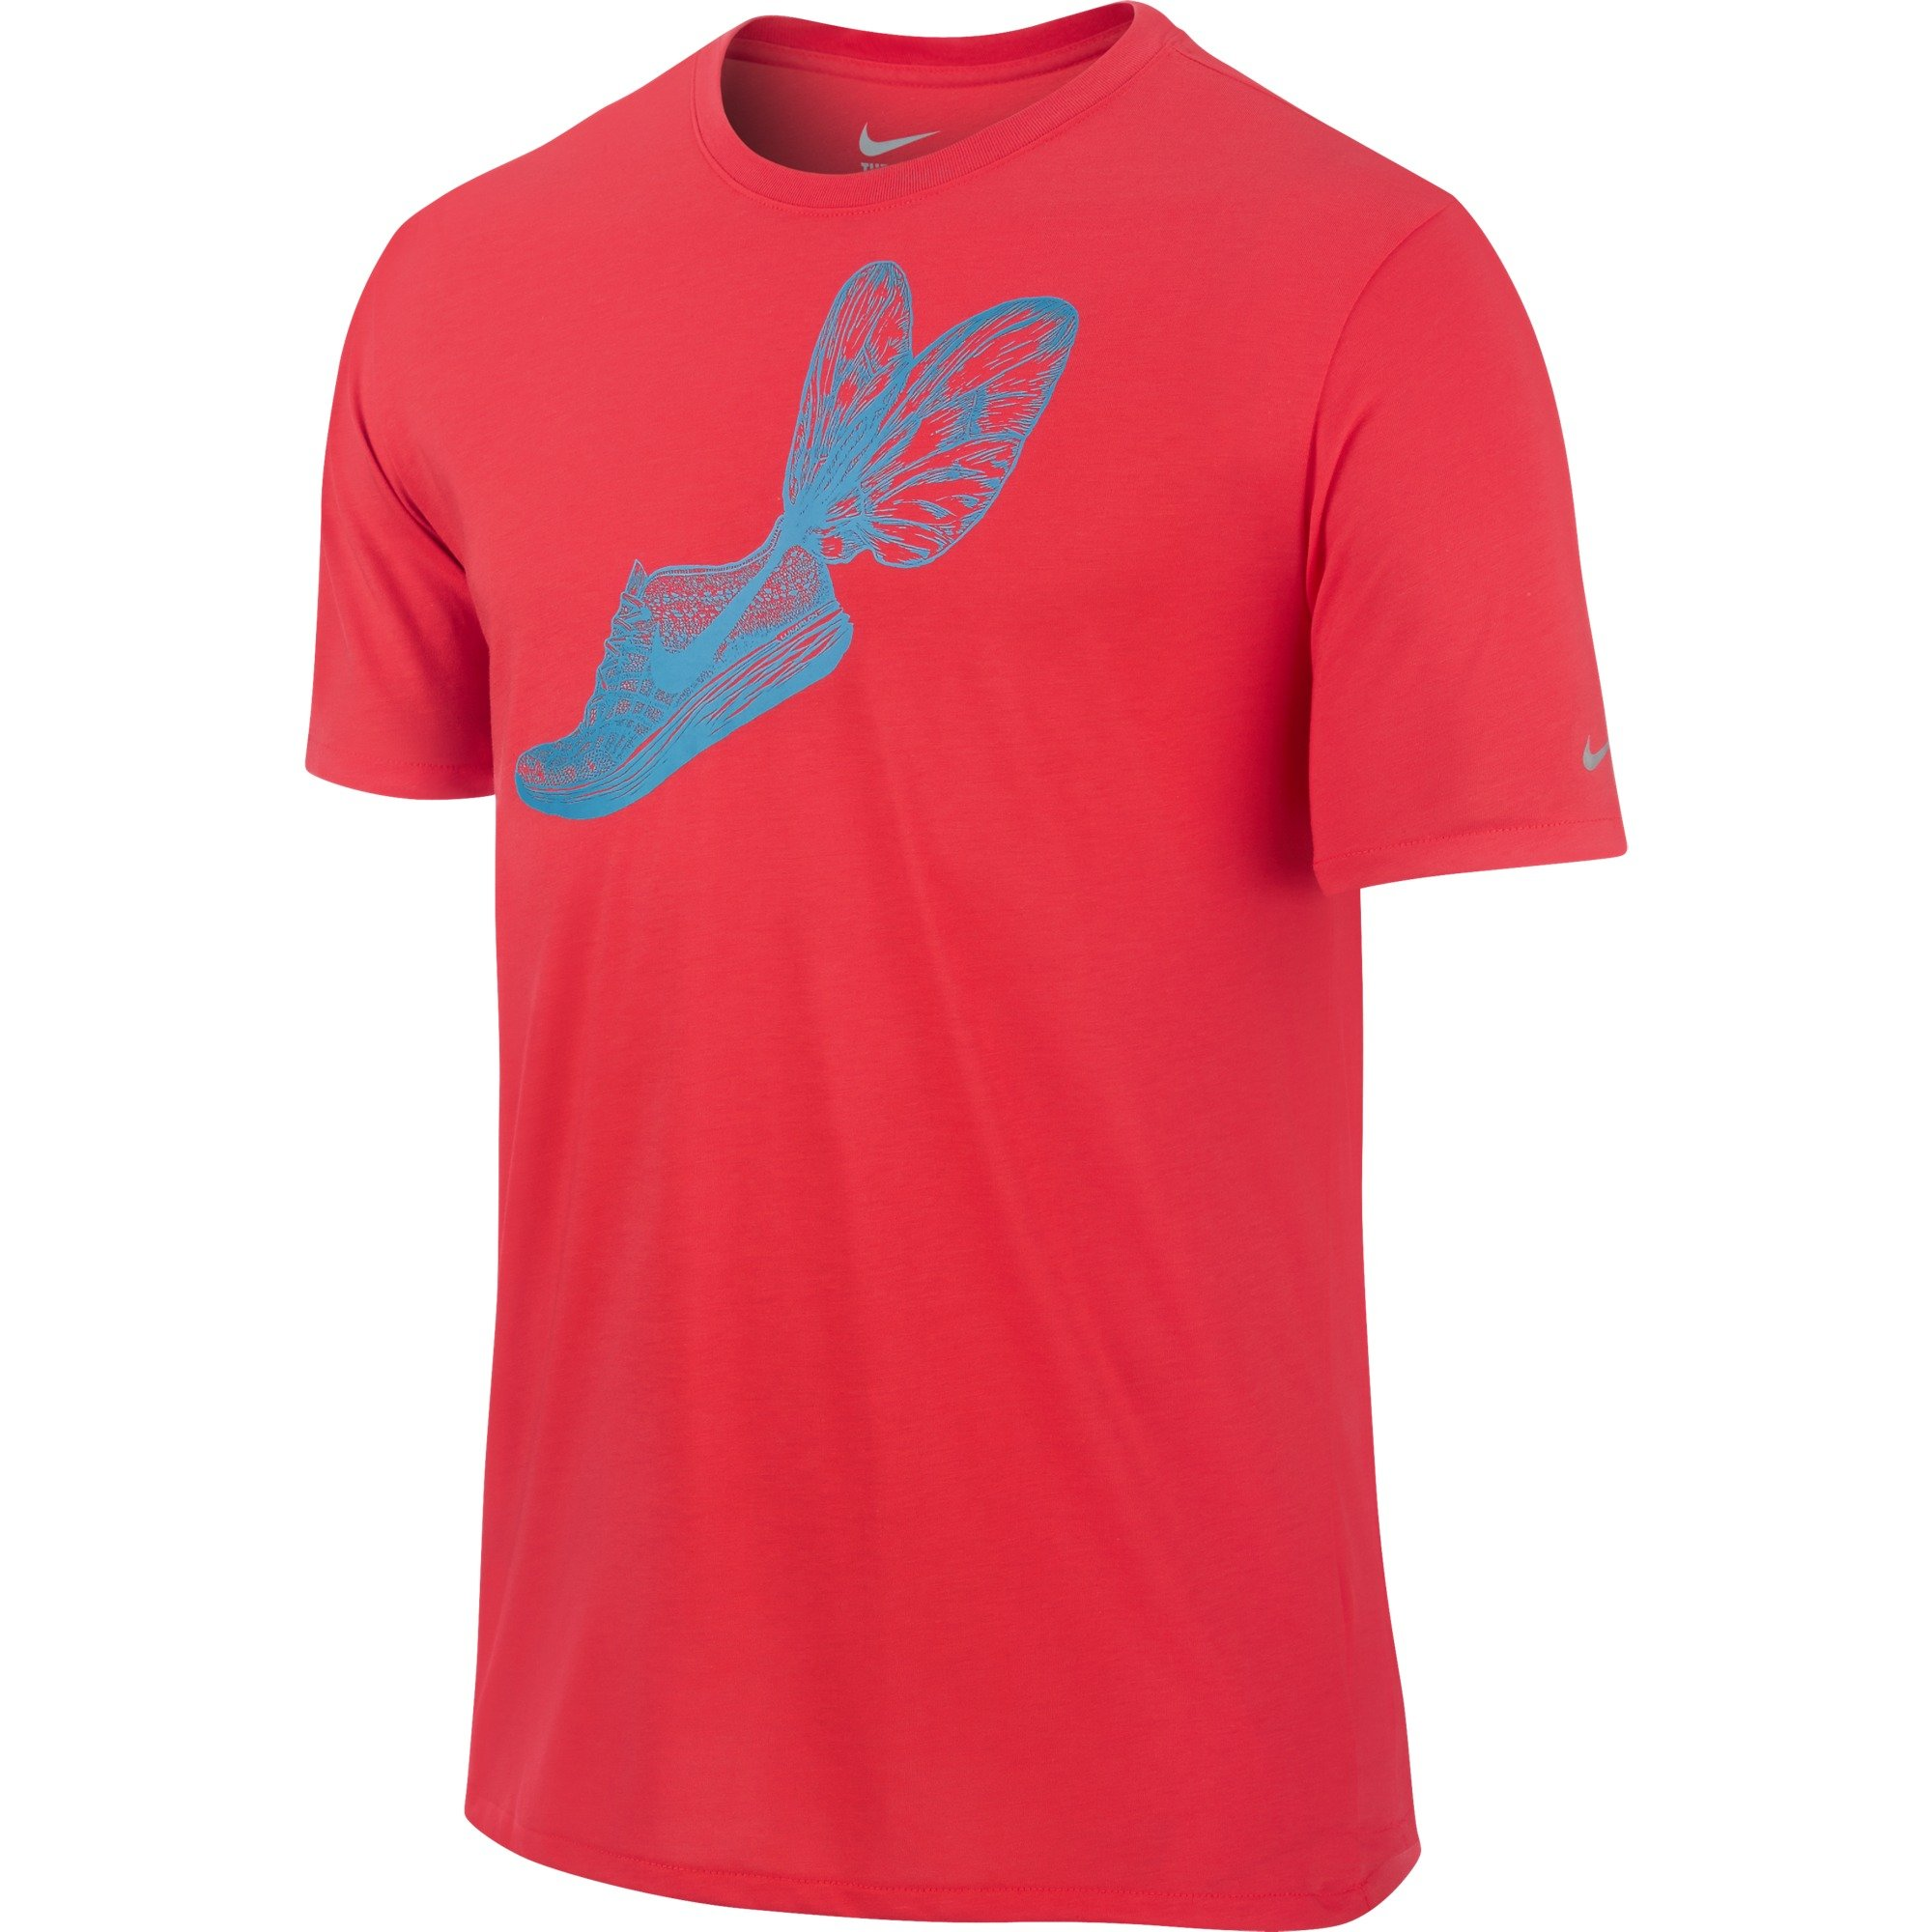 Les foulees de bonsecours running track for Nike flyknit t shirt